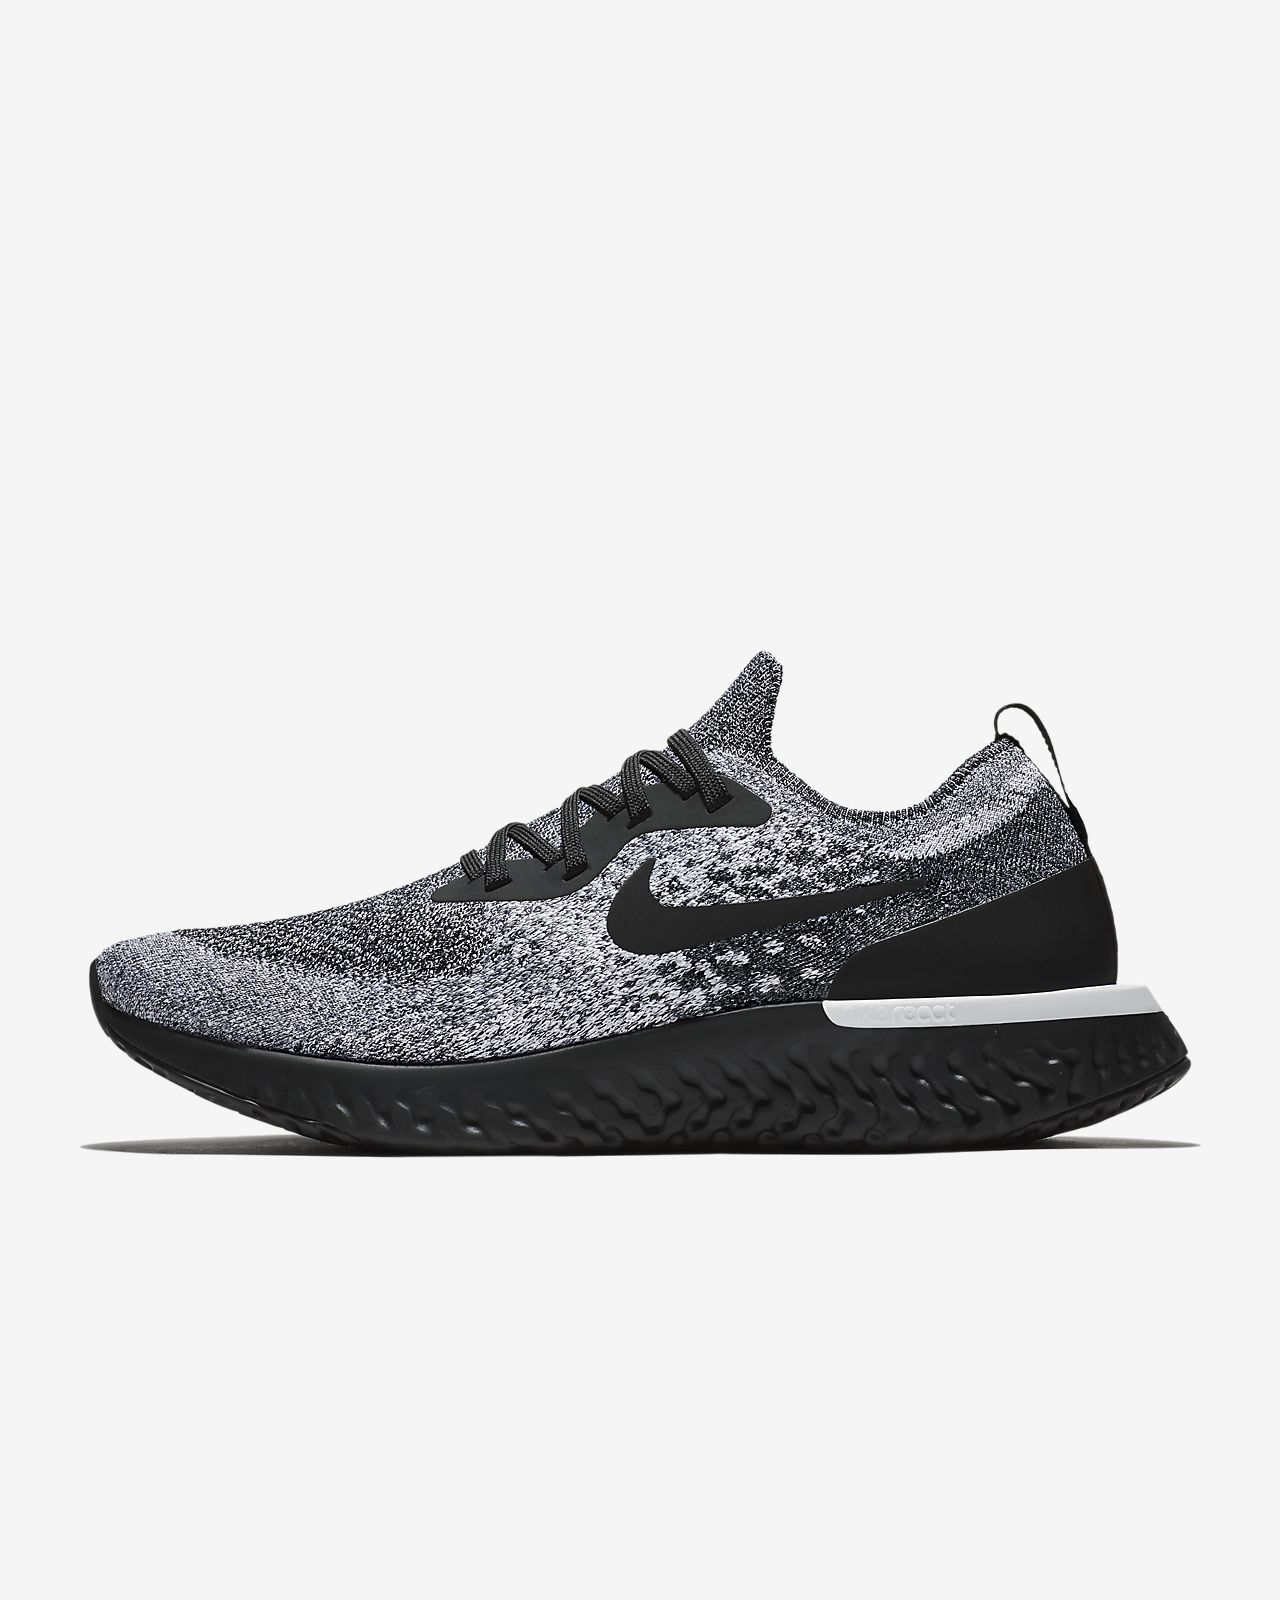 345b634496 Low Resolution Nike Epic React Flyknit Men's Running Shoe Nike Epic React  Flyknit Men's Running Shoe